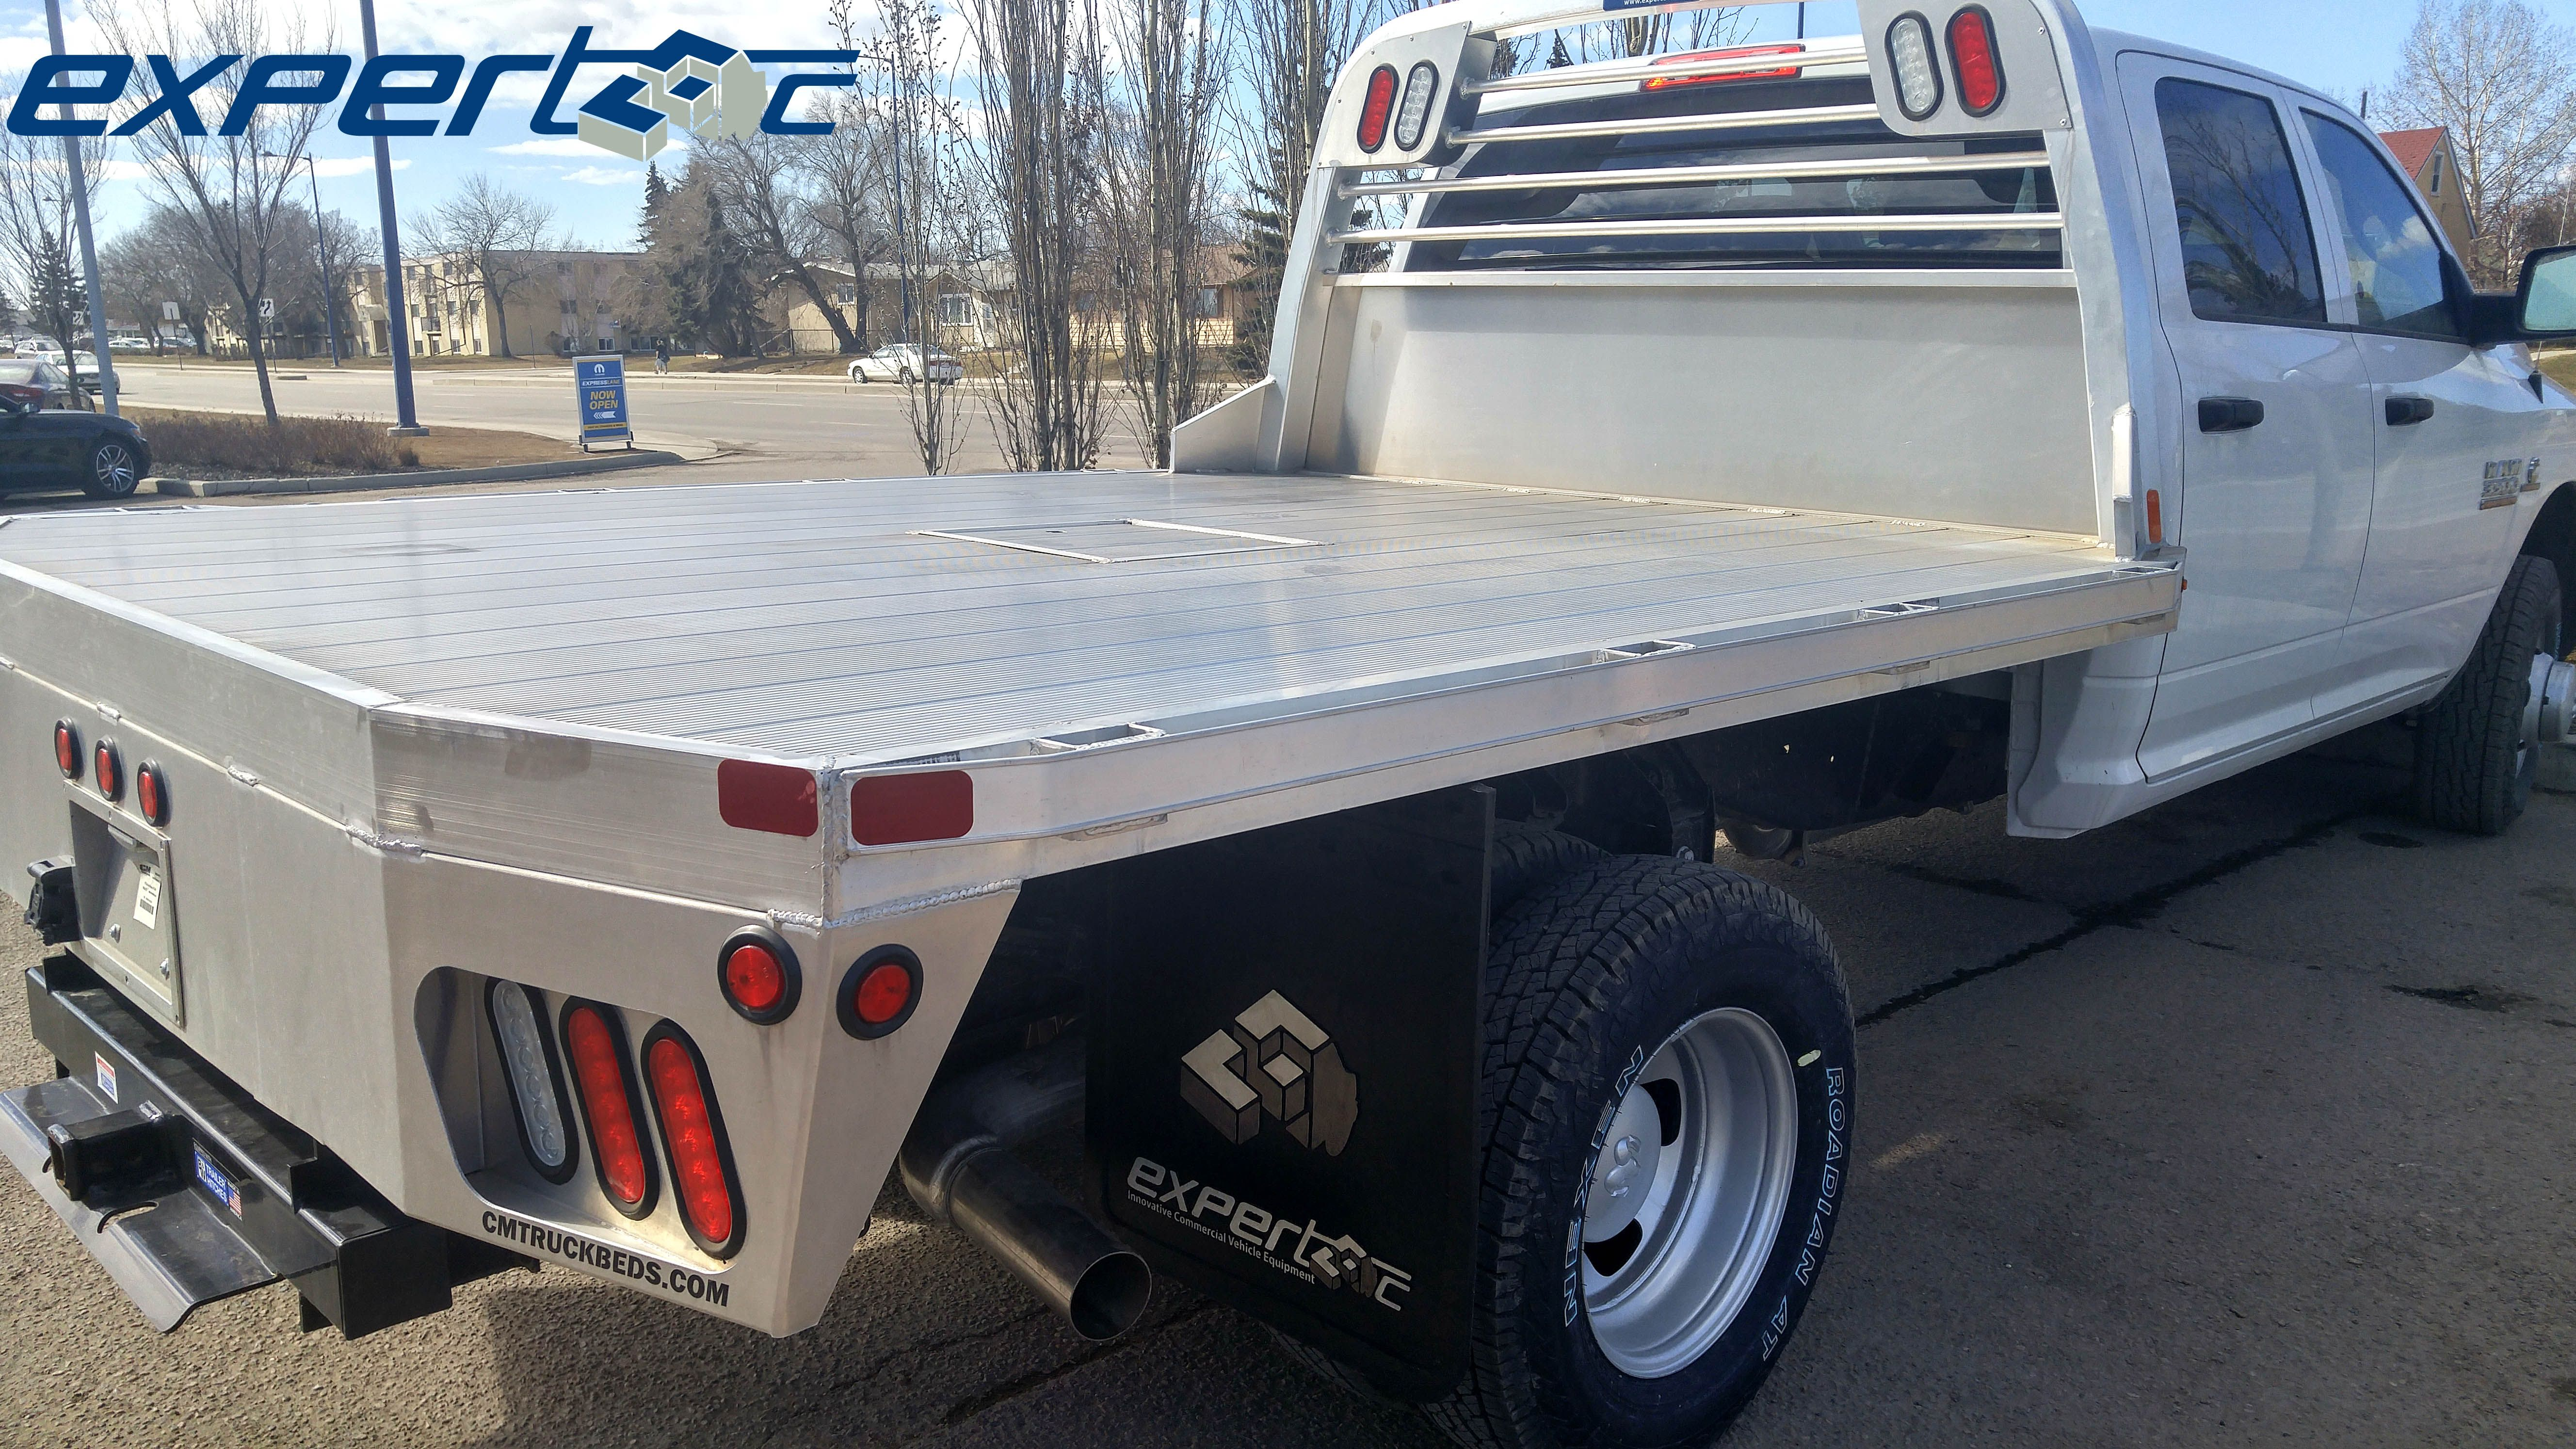 Just finished installing and delivering this aluminum flat bed by cm truck beds for londonderry dodge